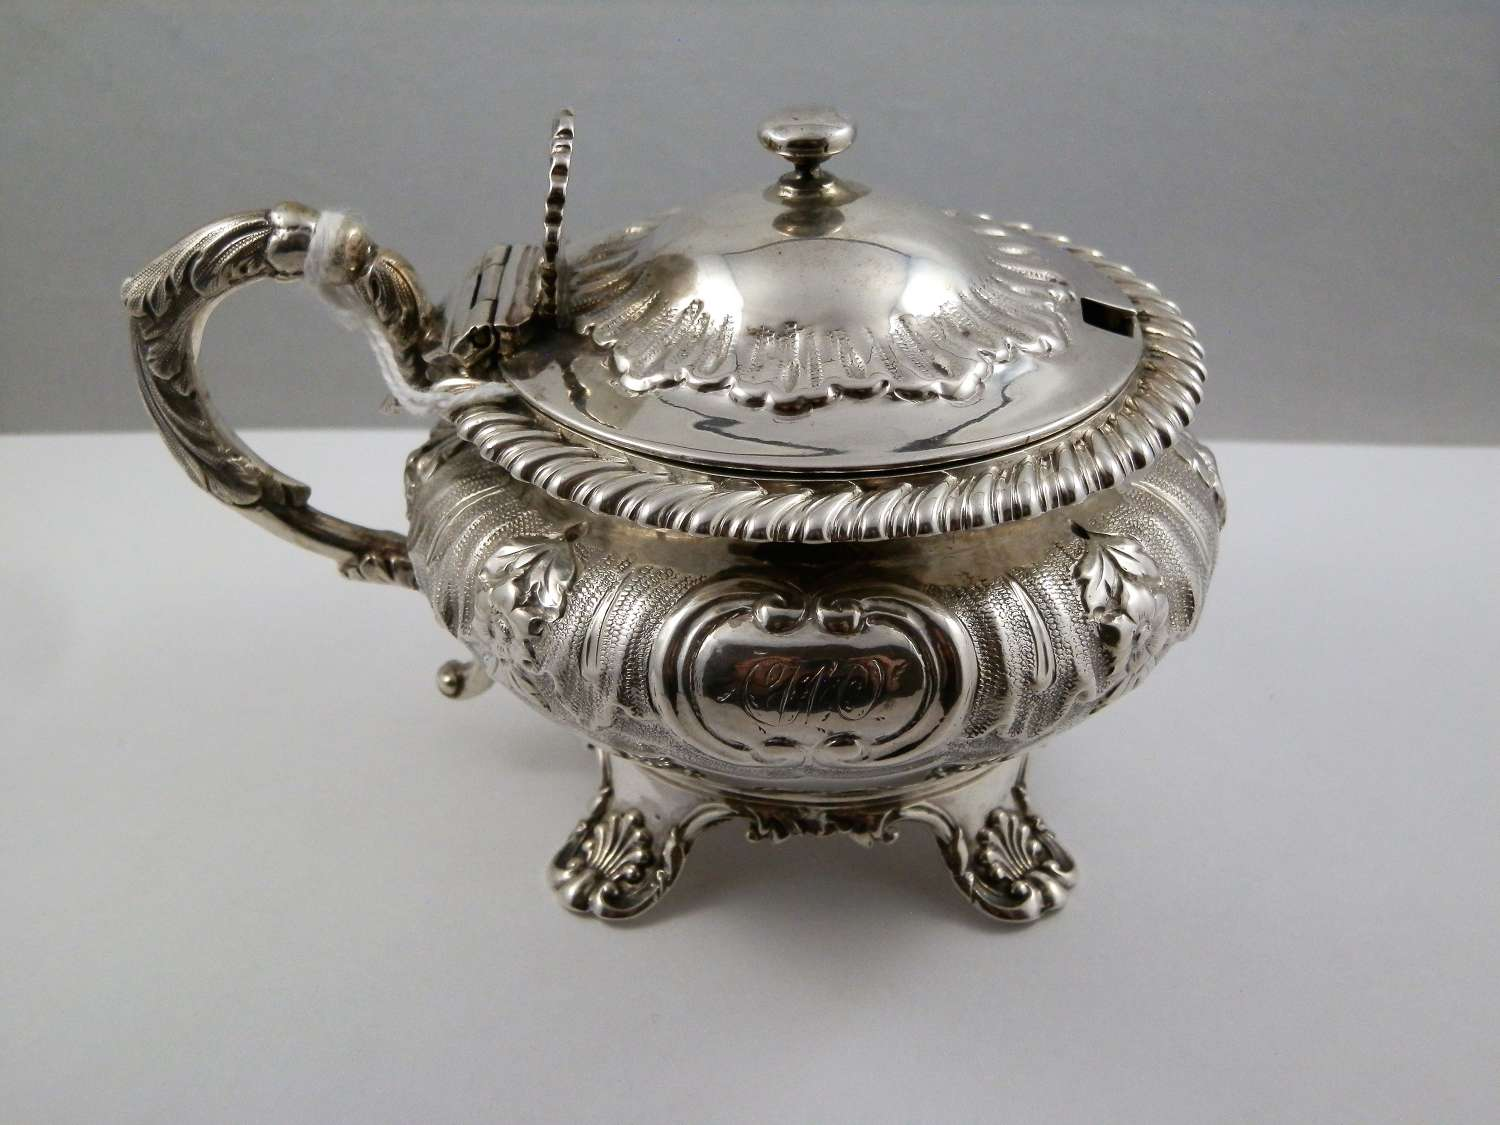 William IV silver ornate mustard pot, London 1835